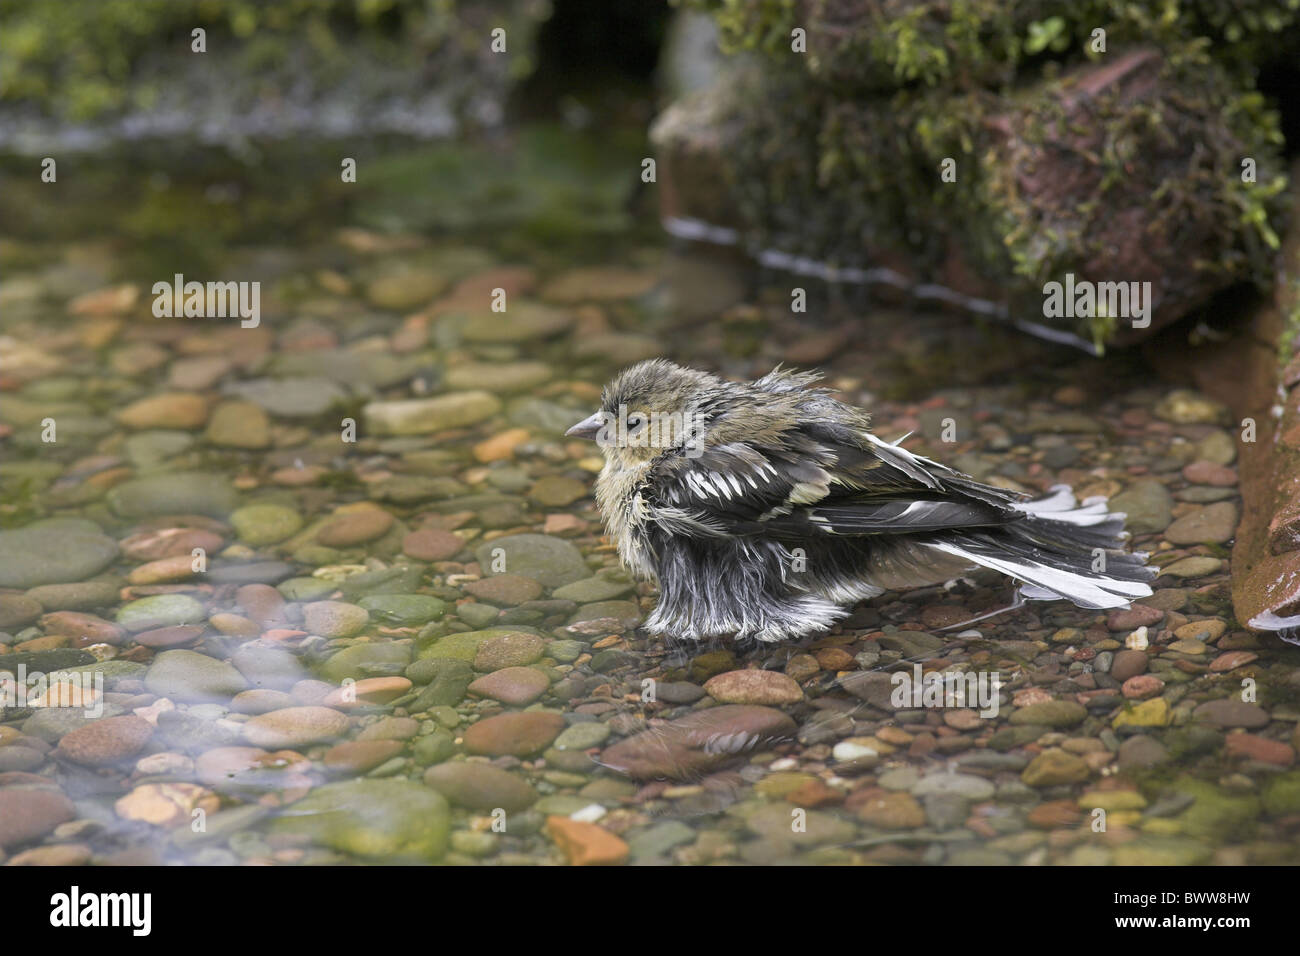 Chaffinch (Fringilla coelebs) adult female, bathing in garden pool, Chirnside, Berwickshire, Scotland, summer - Stock Image